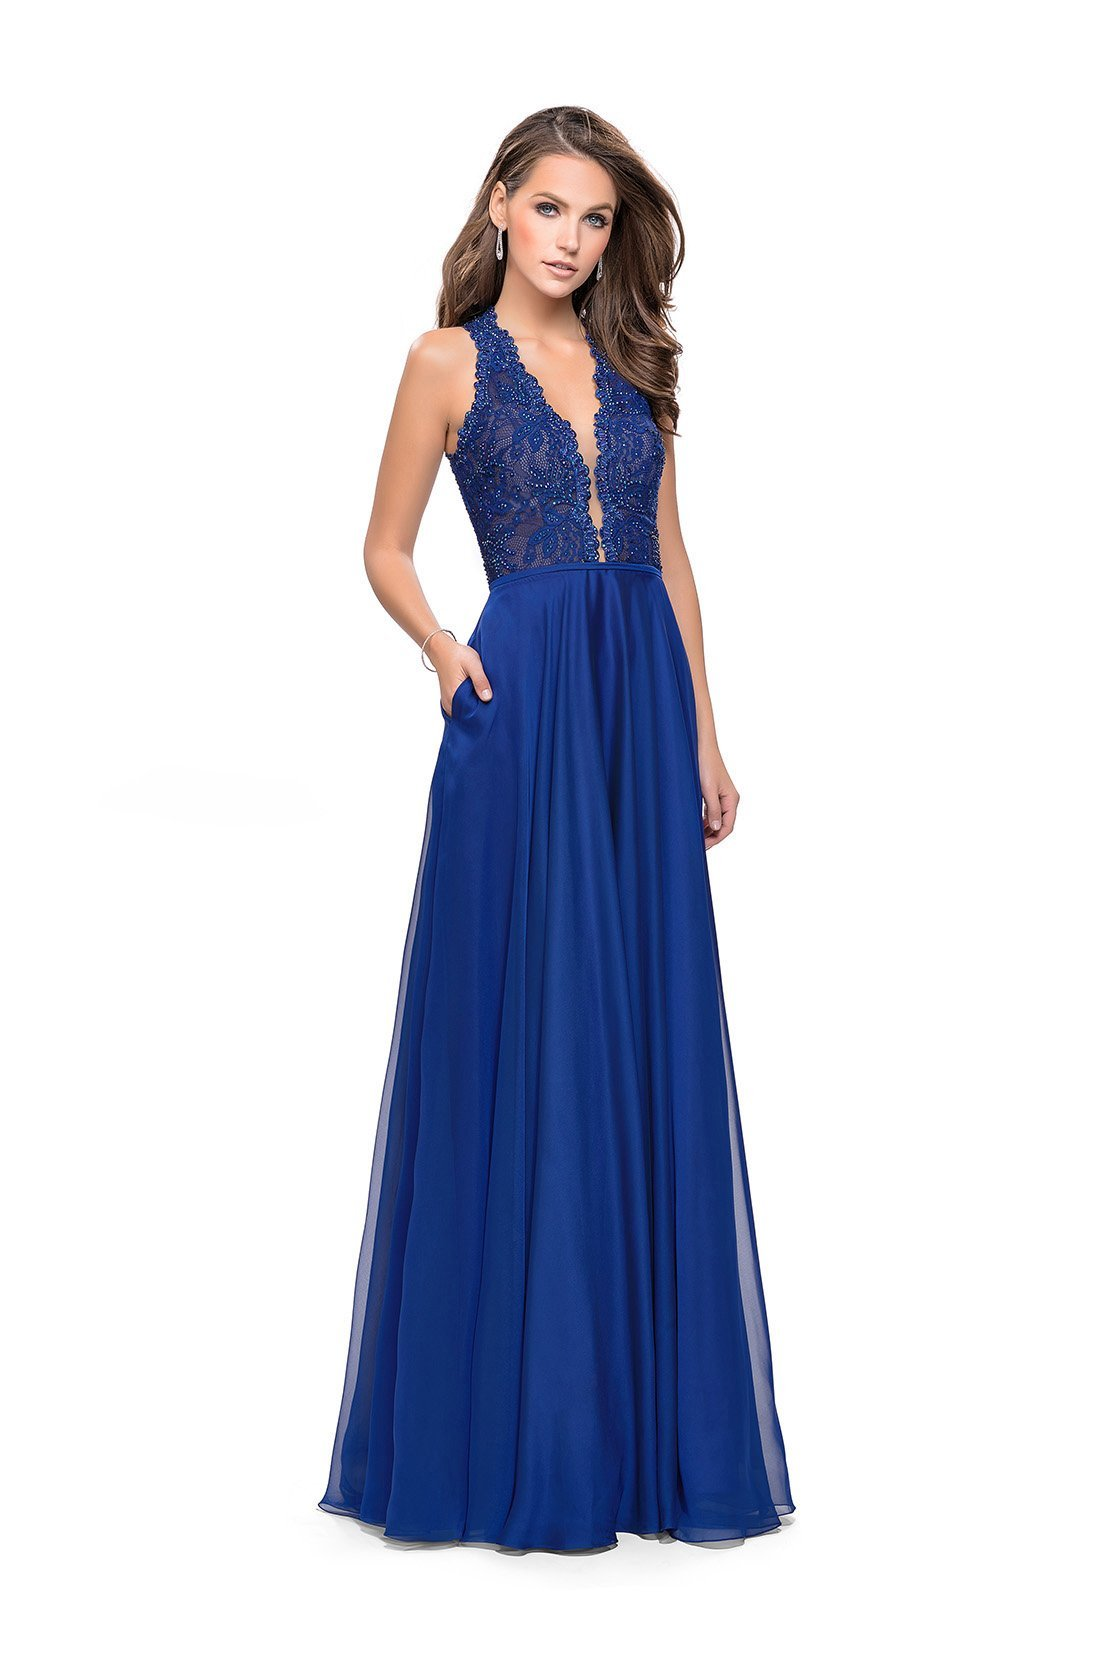 La Femme - Scalloped Plunging Lace Chiffon Dress 25487SC In Blue